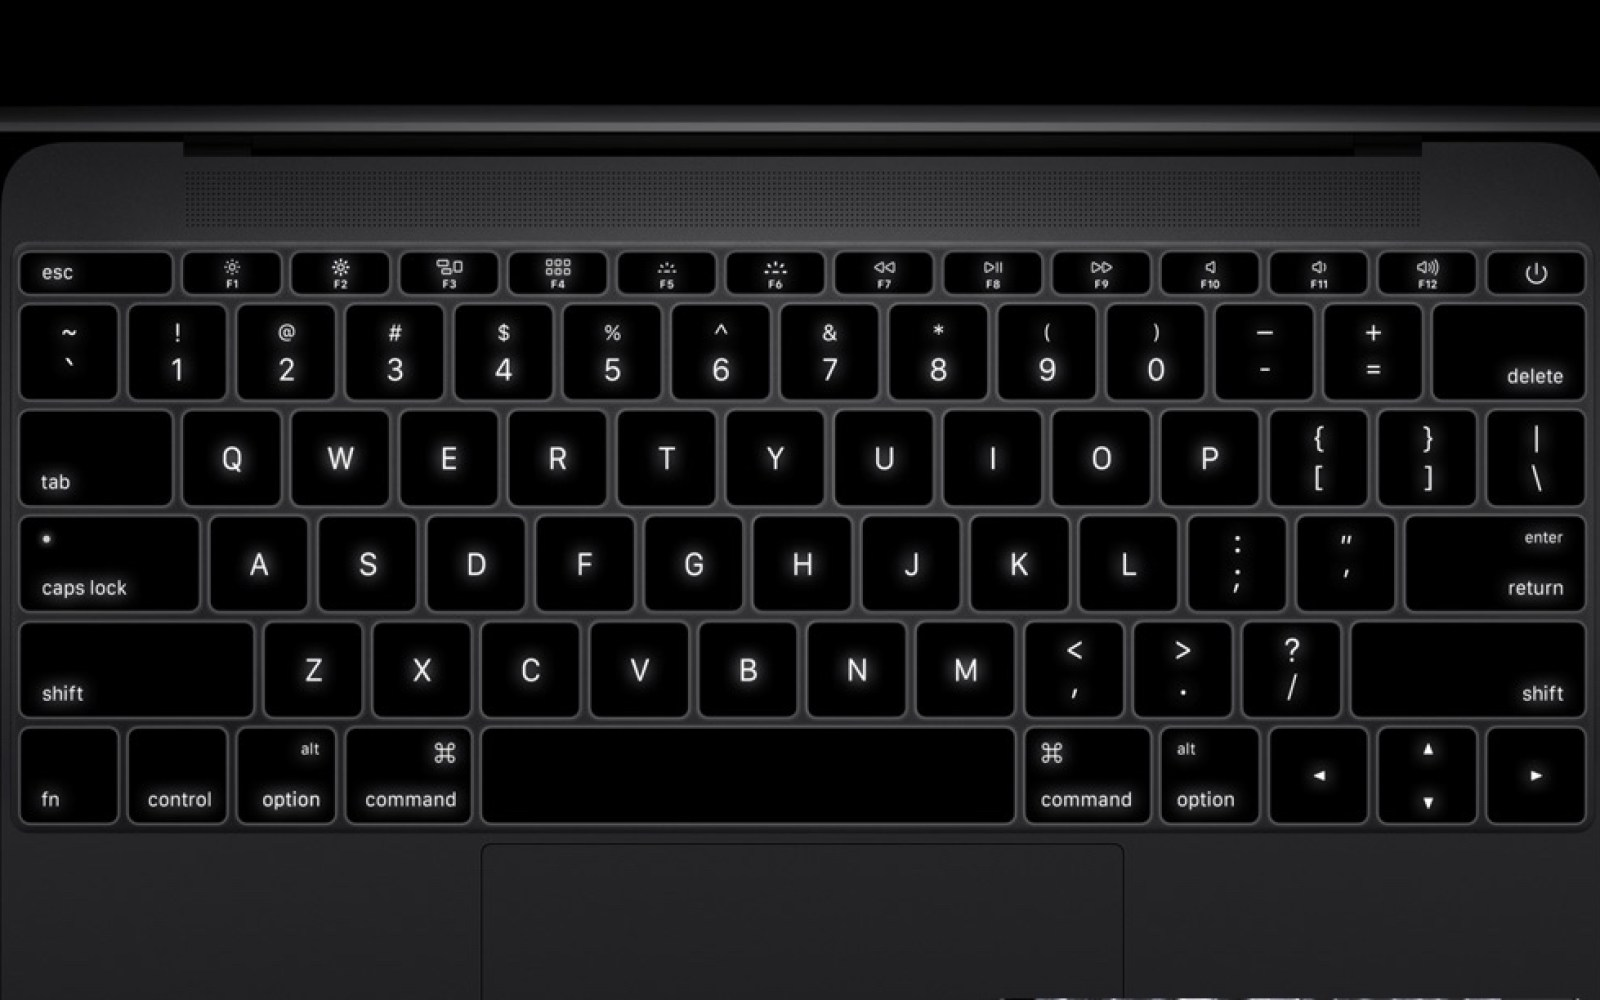 WSJ: Apple to launch new Mac laptops with E-Ink dynamic keyboards in 2018, contextually display emojis and special characters